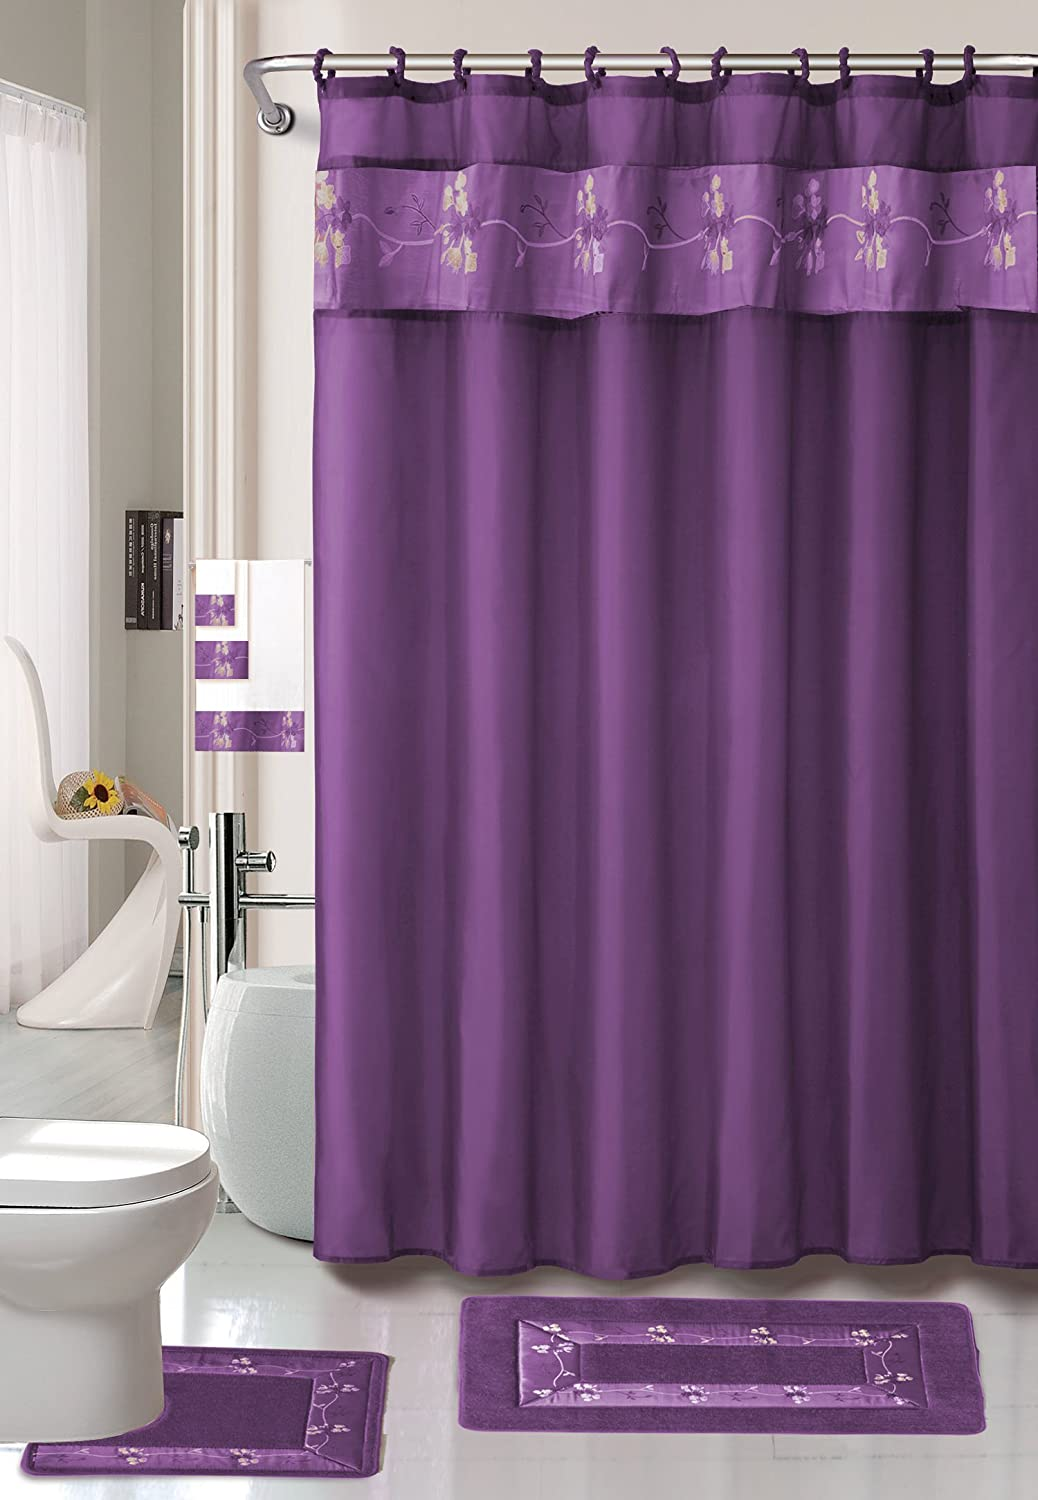 Amazon.com: Purple Flower 18-piece Bathroom Set: 2-rugs/mats, 1 ...